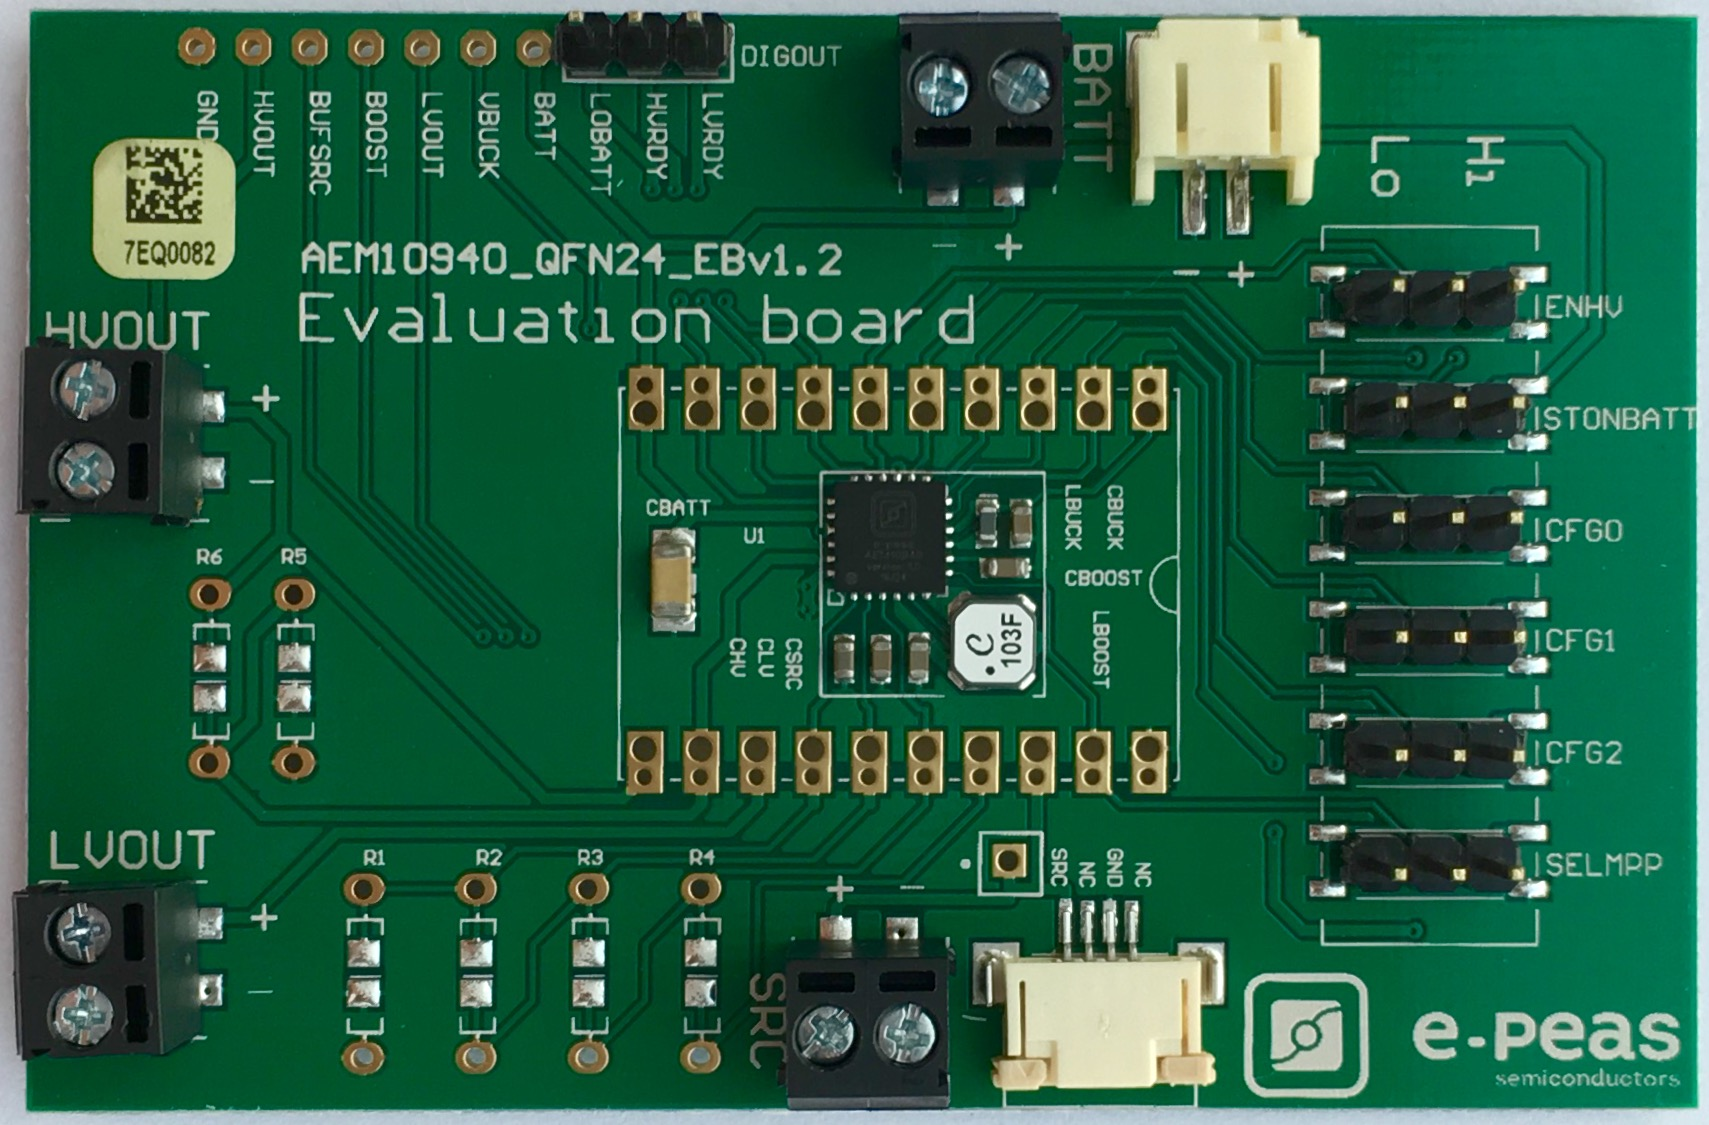 The AEM10940 Evaluation Board